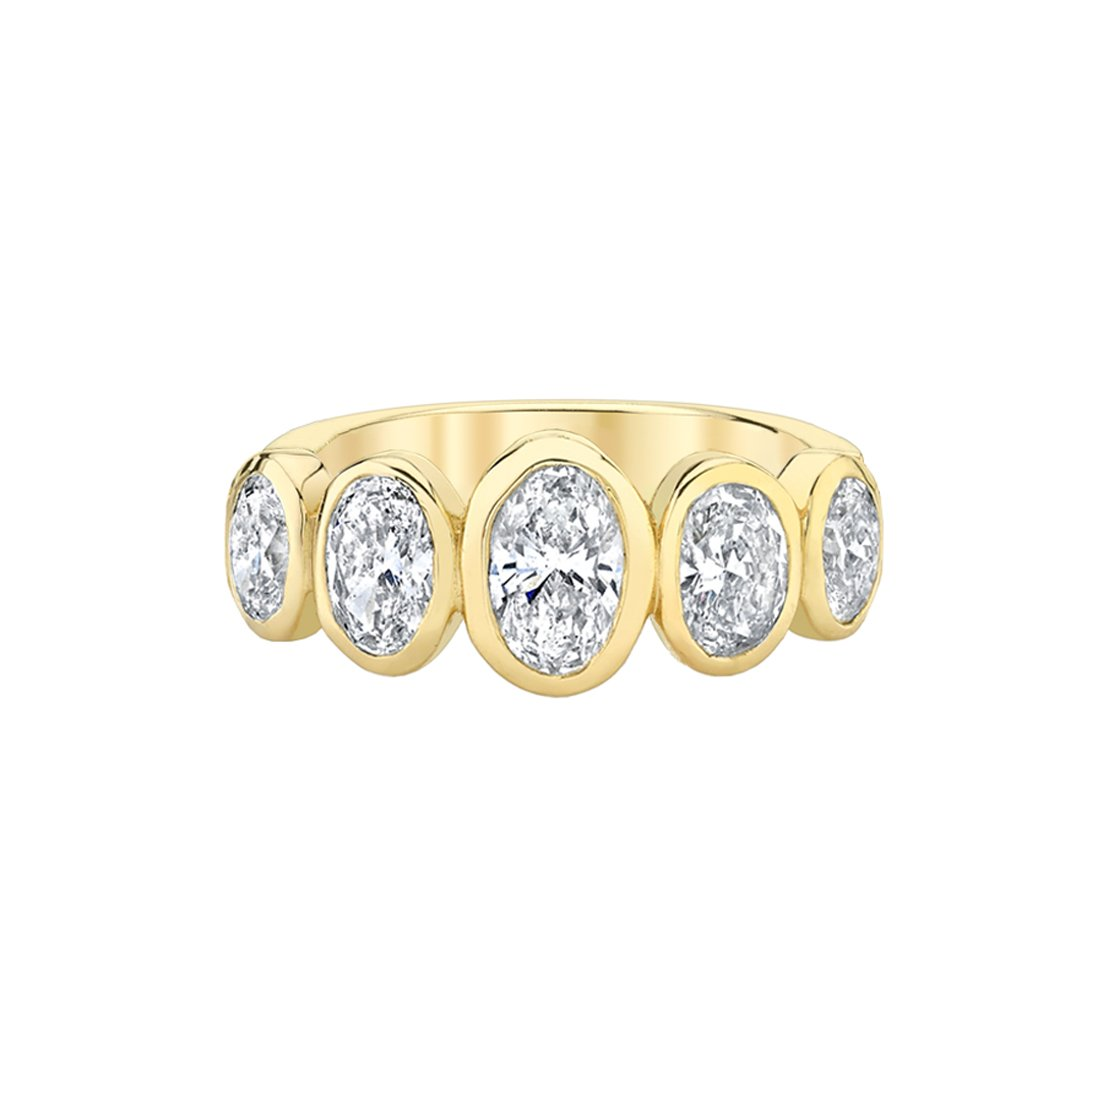 NEW! Graduated Oval Diamond Band